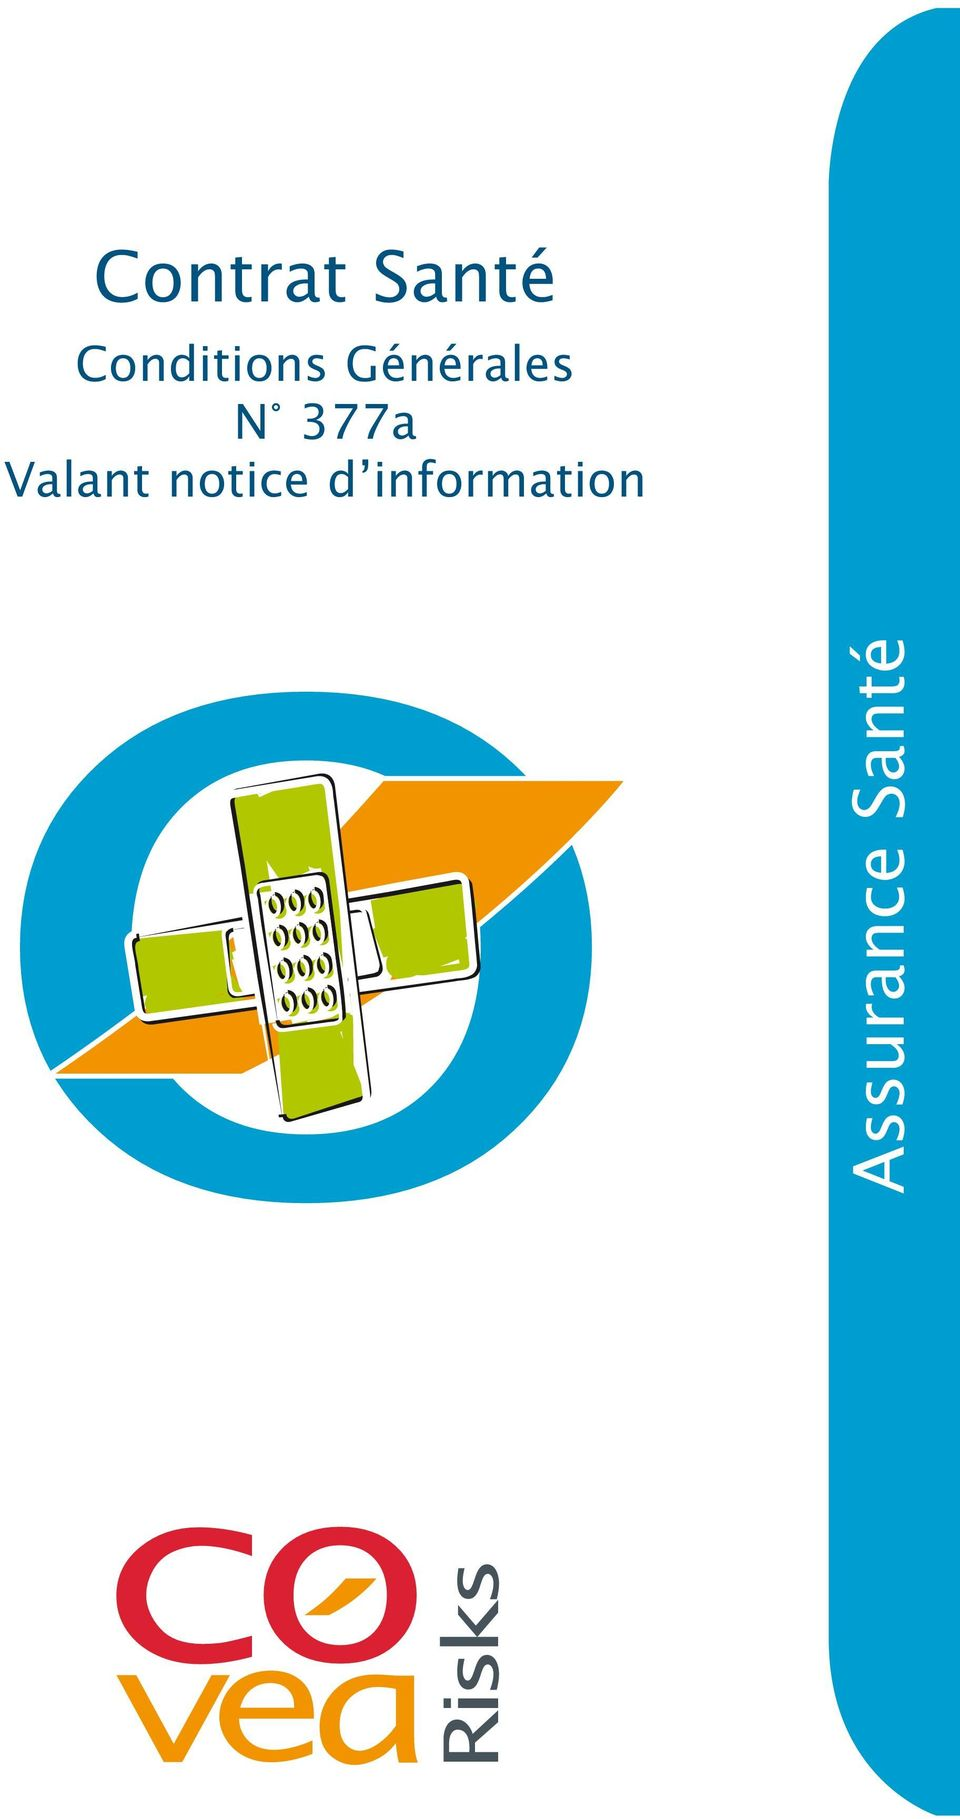 N 377a Valant notice